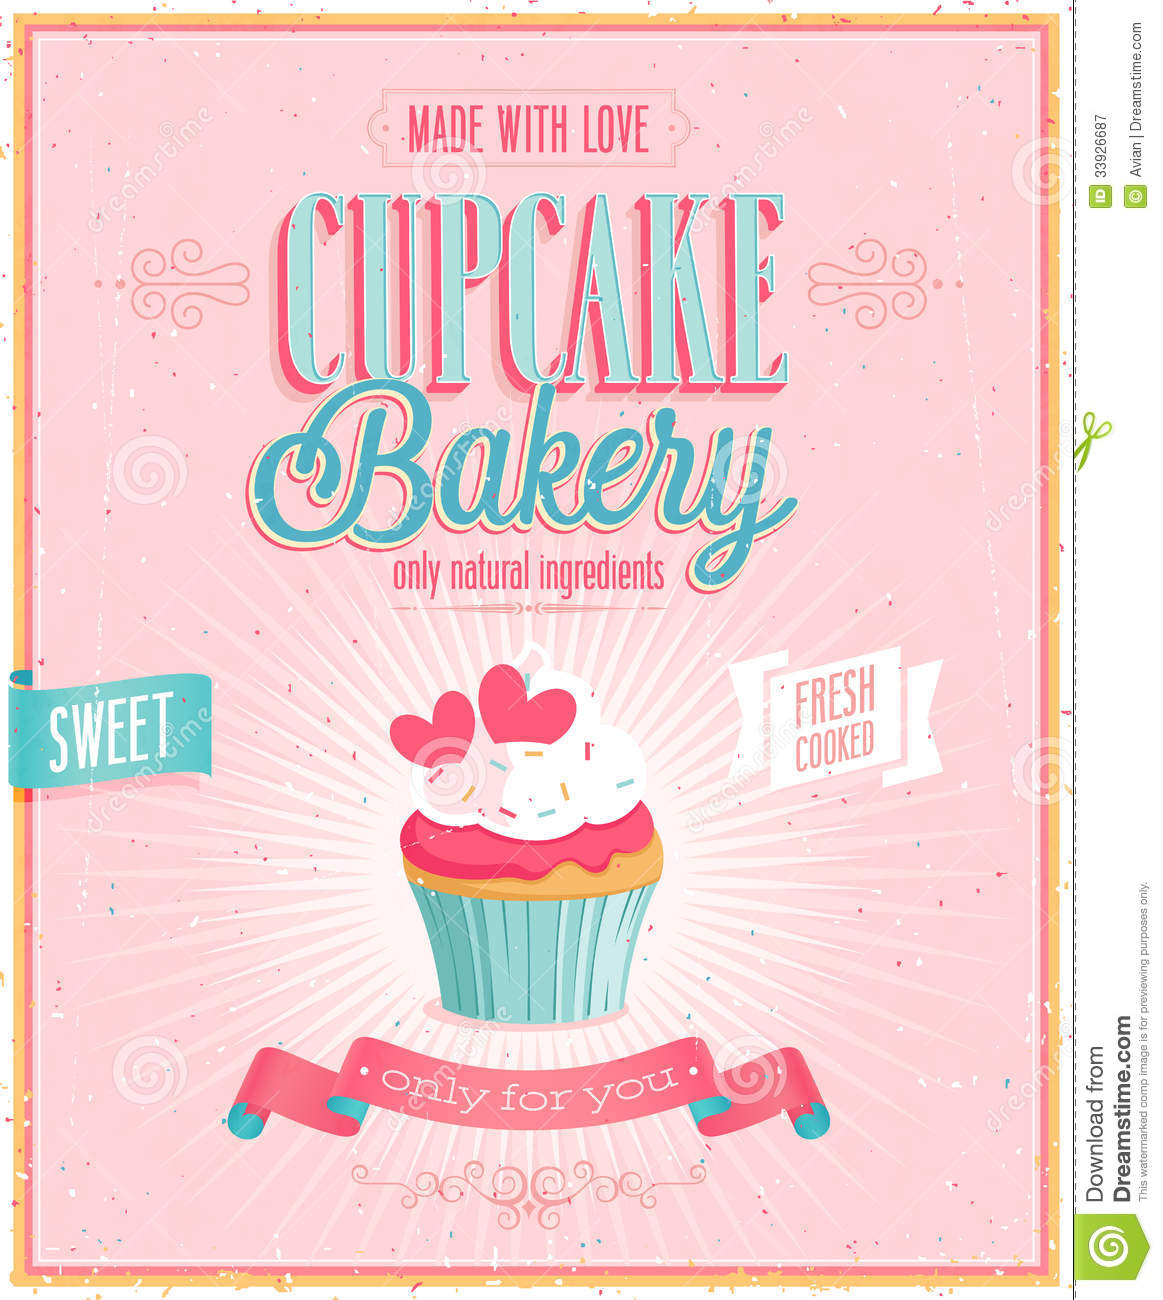 Printable Letter Templates For Cake Decorating